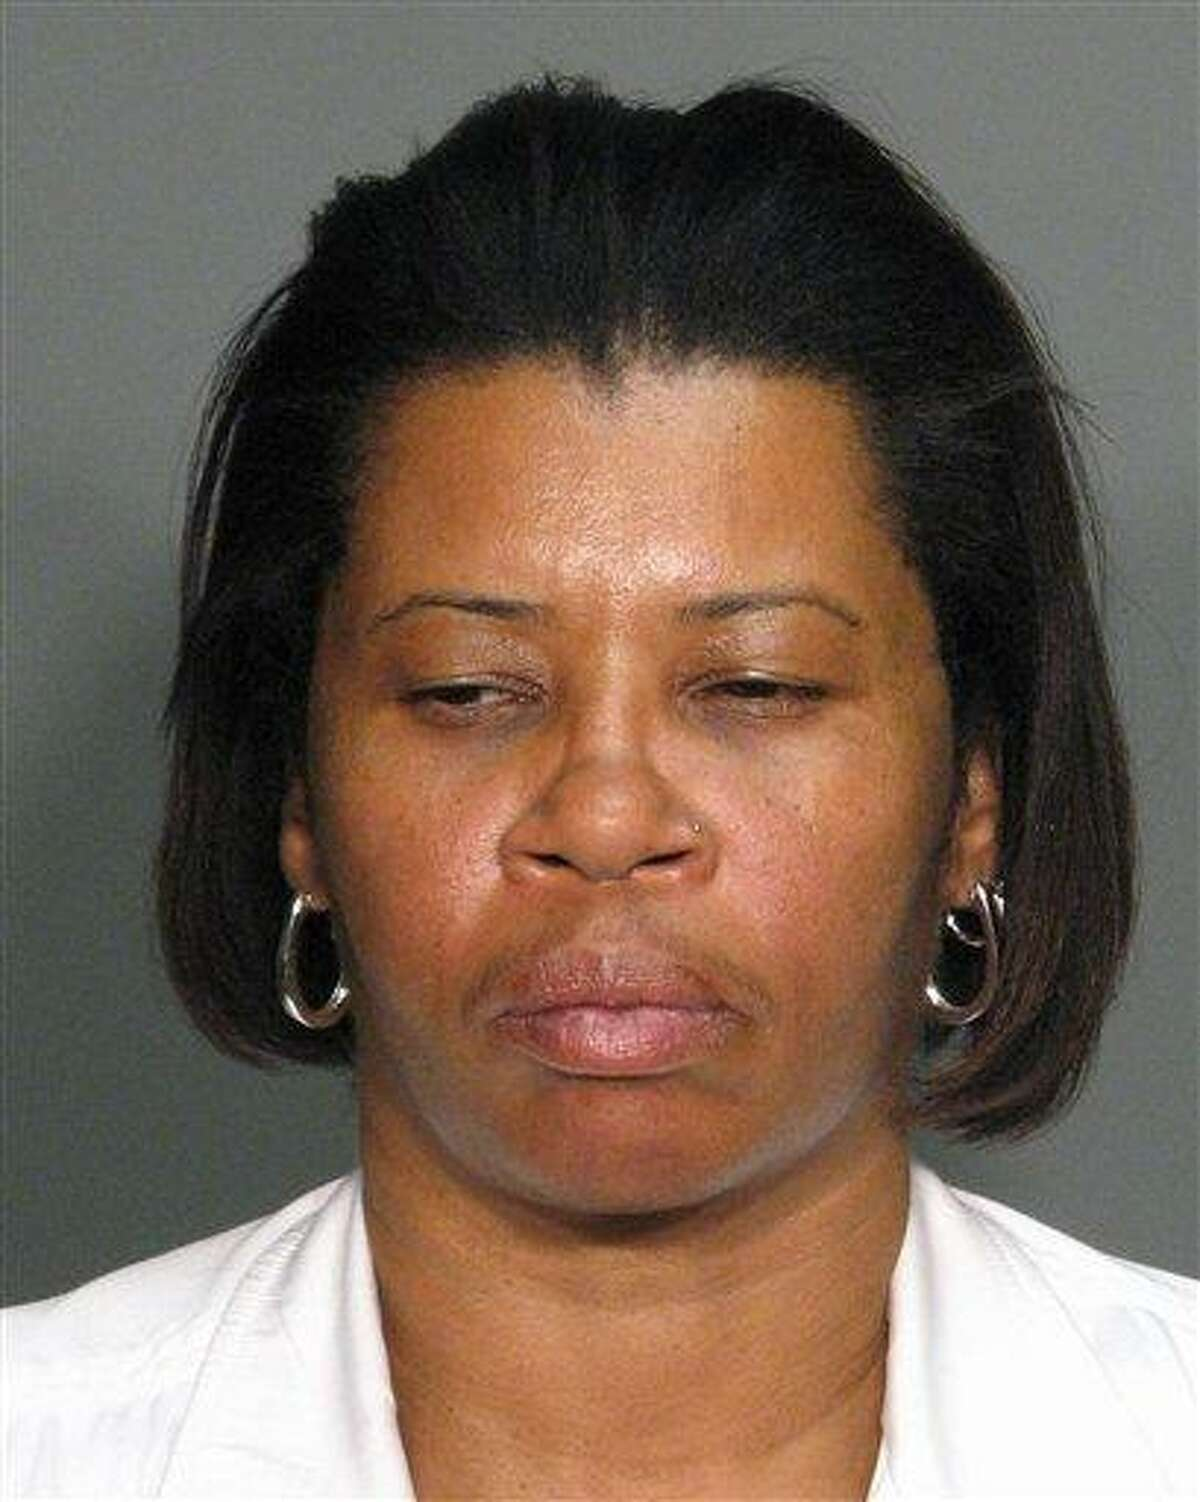 This 2010 file photo provided by the Wake County (N.C.) Bureau of Identification shows Ann Pettway. Pettway, who snatched a newborn baby from a New York hospital more than two decades ago and raised her as her own, faces sentencing in Manhattan federal court on Monday. Associated Press